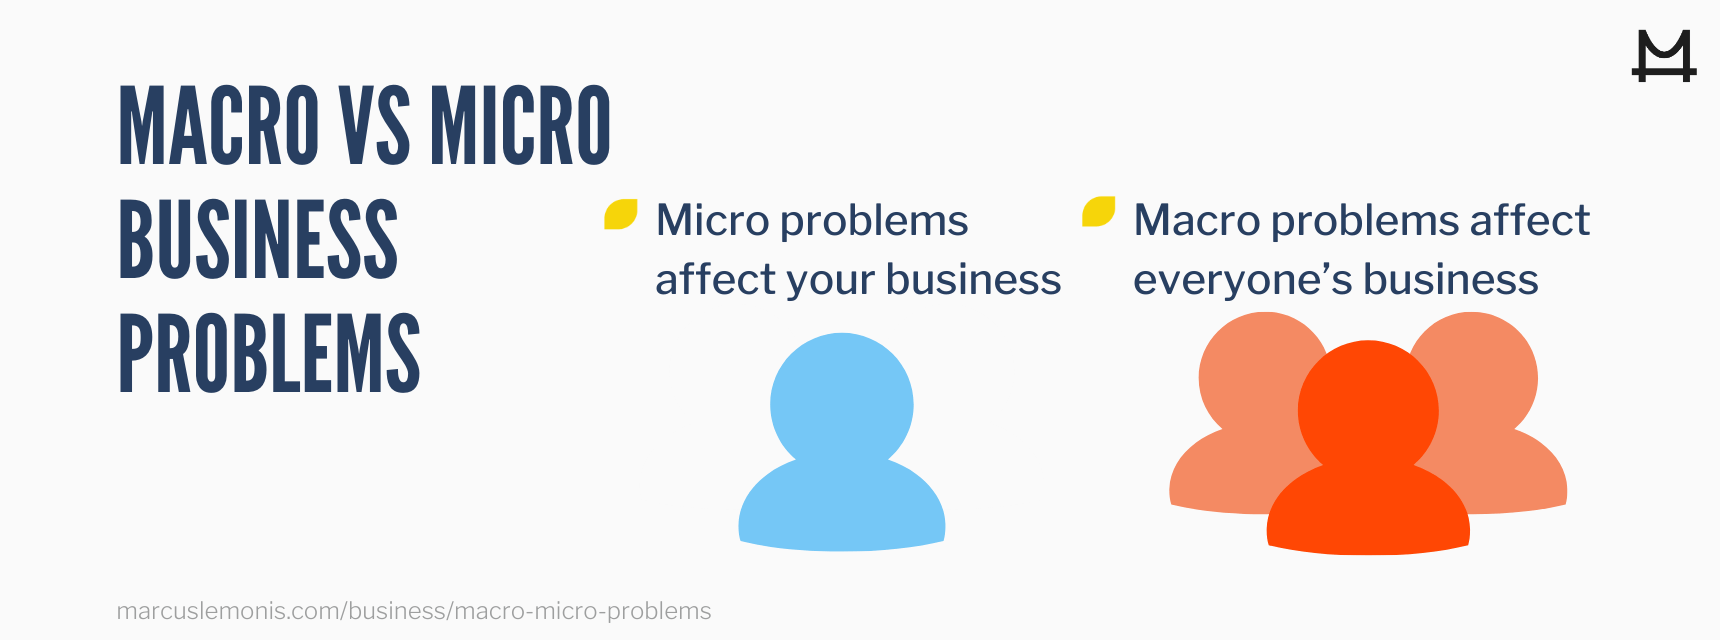 The difference between macro and micro business problems.